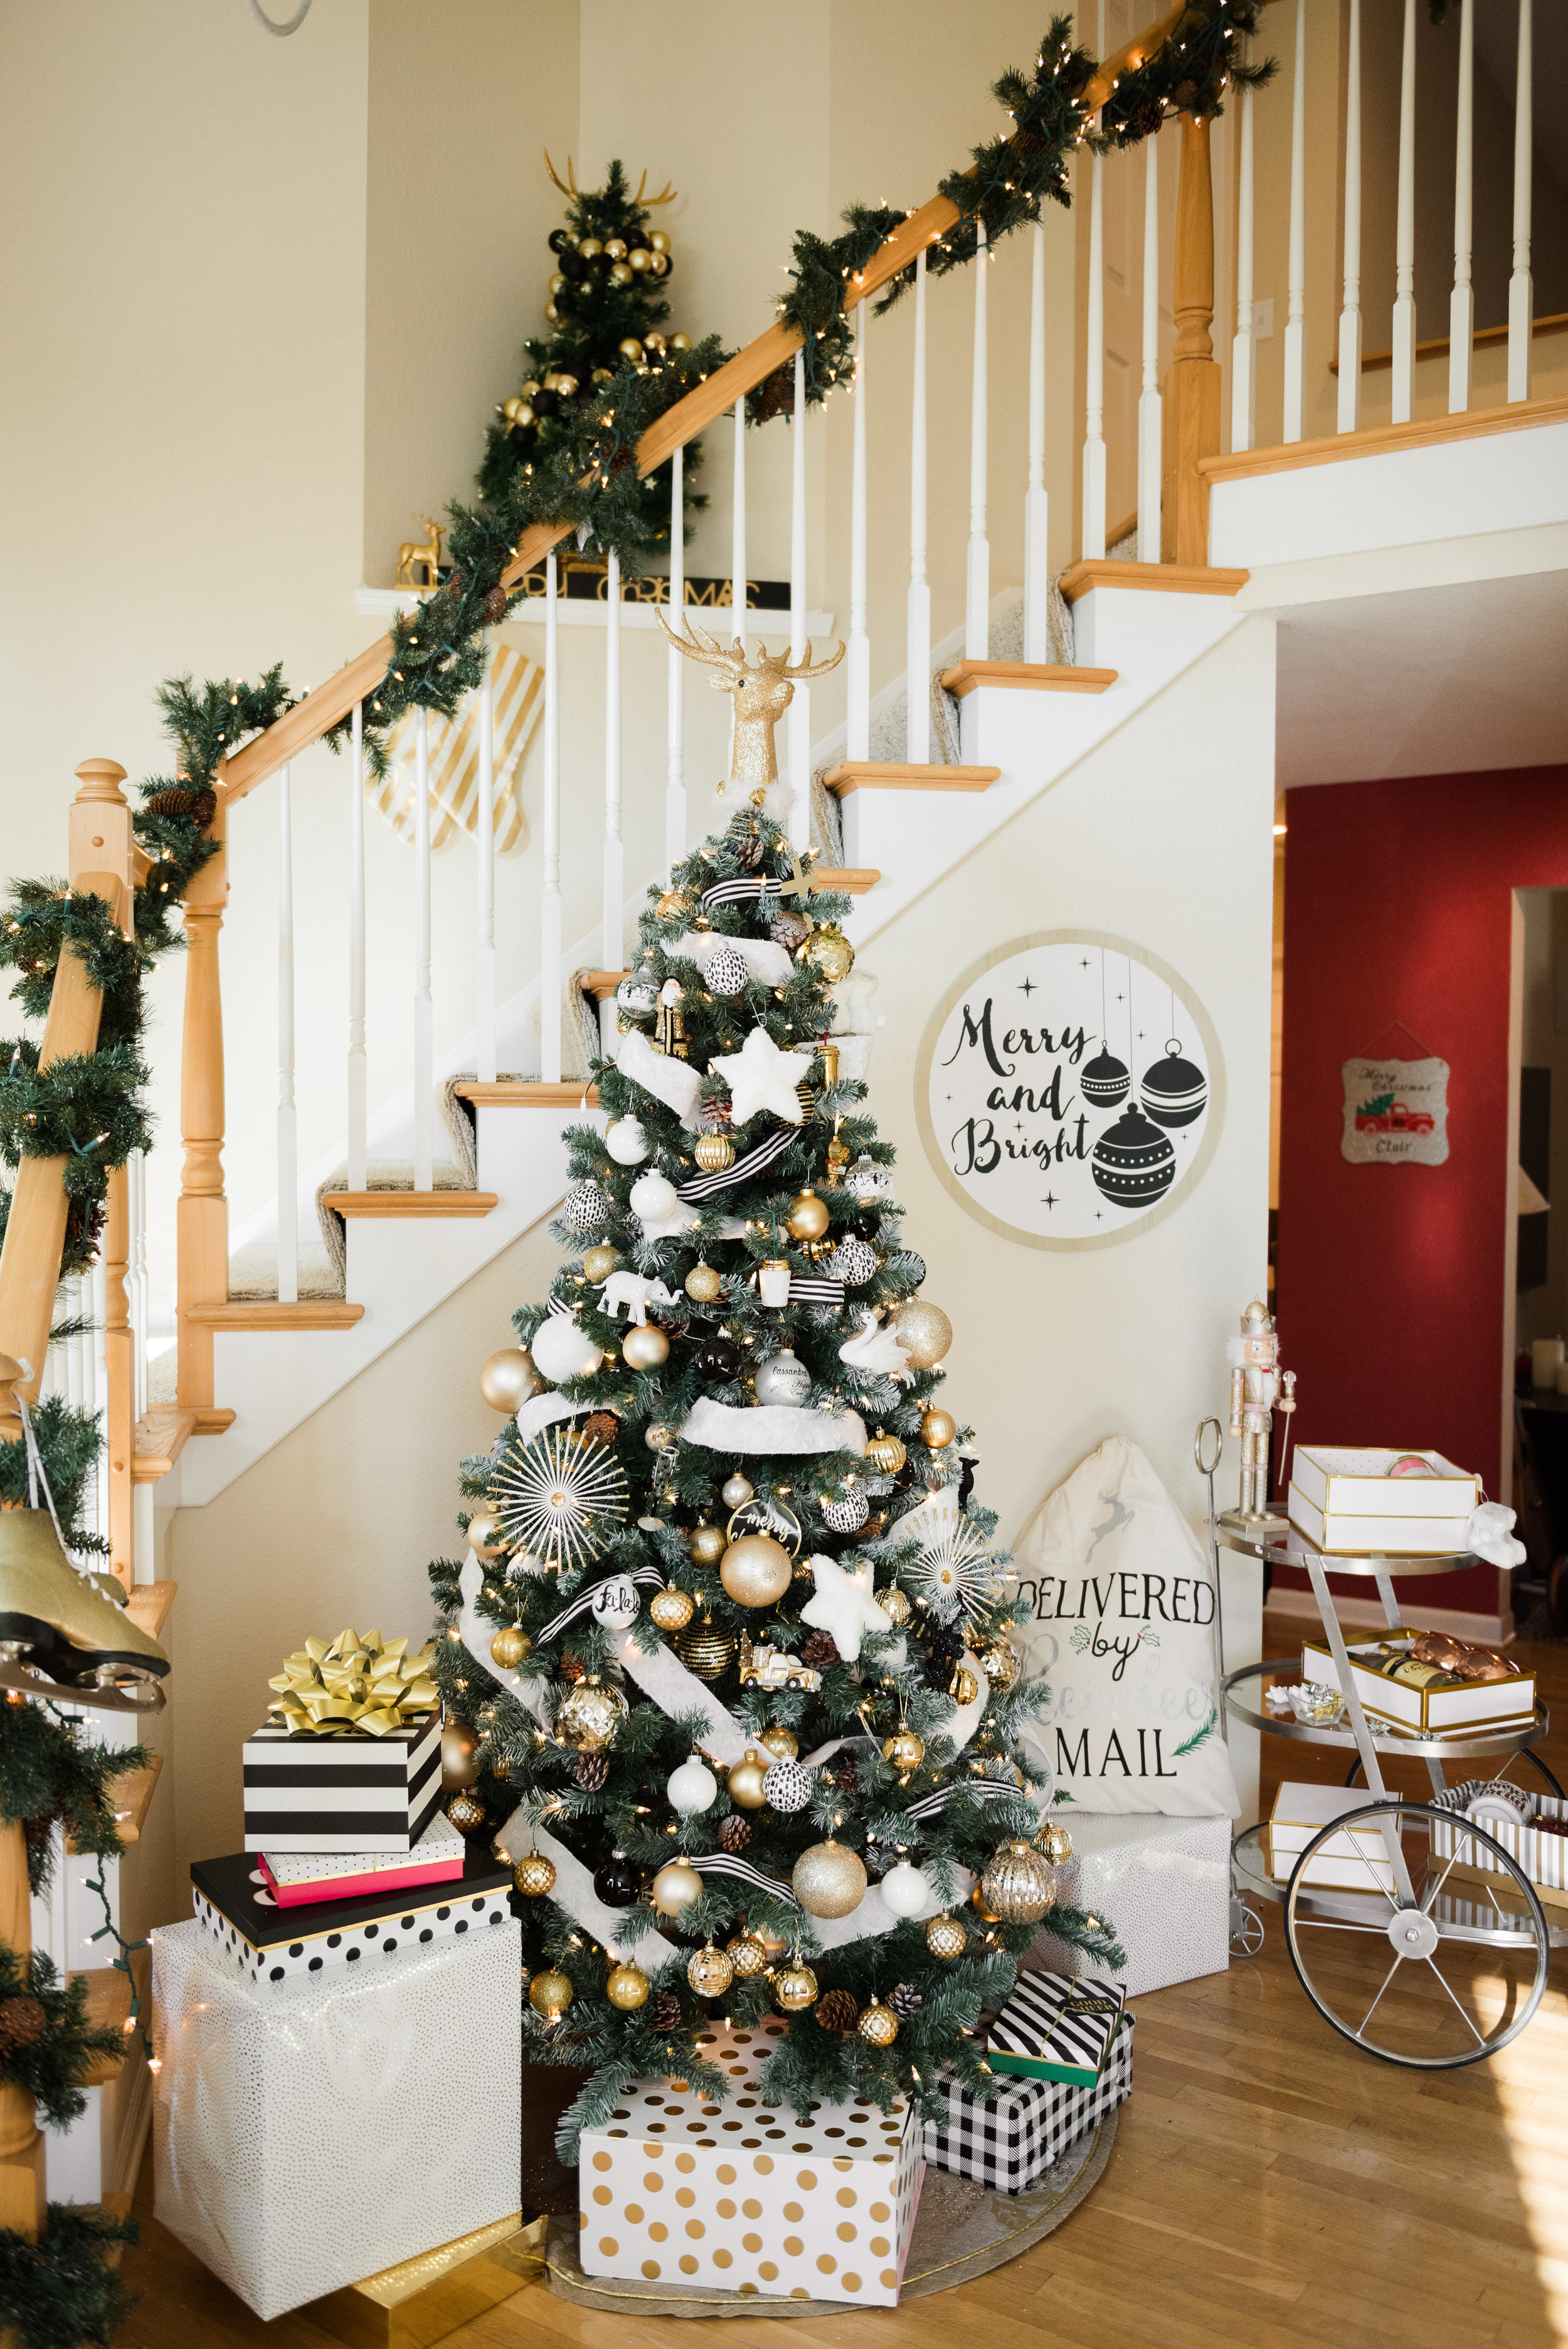 Festive-Black-and-White-Holiday-Christmas-Party-by-Event-Prep